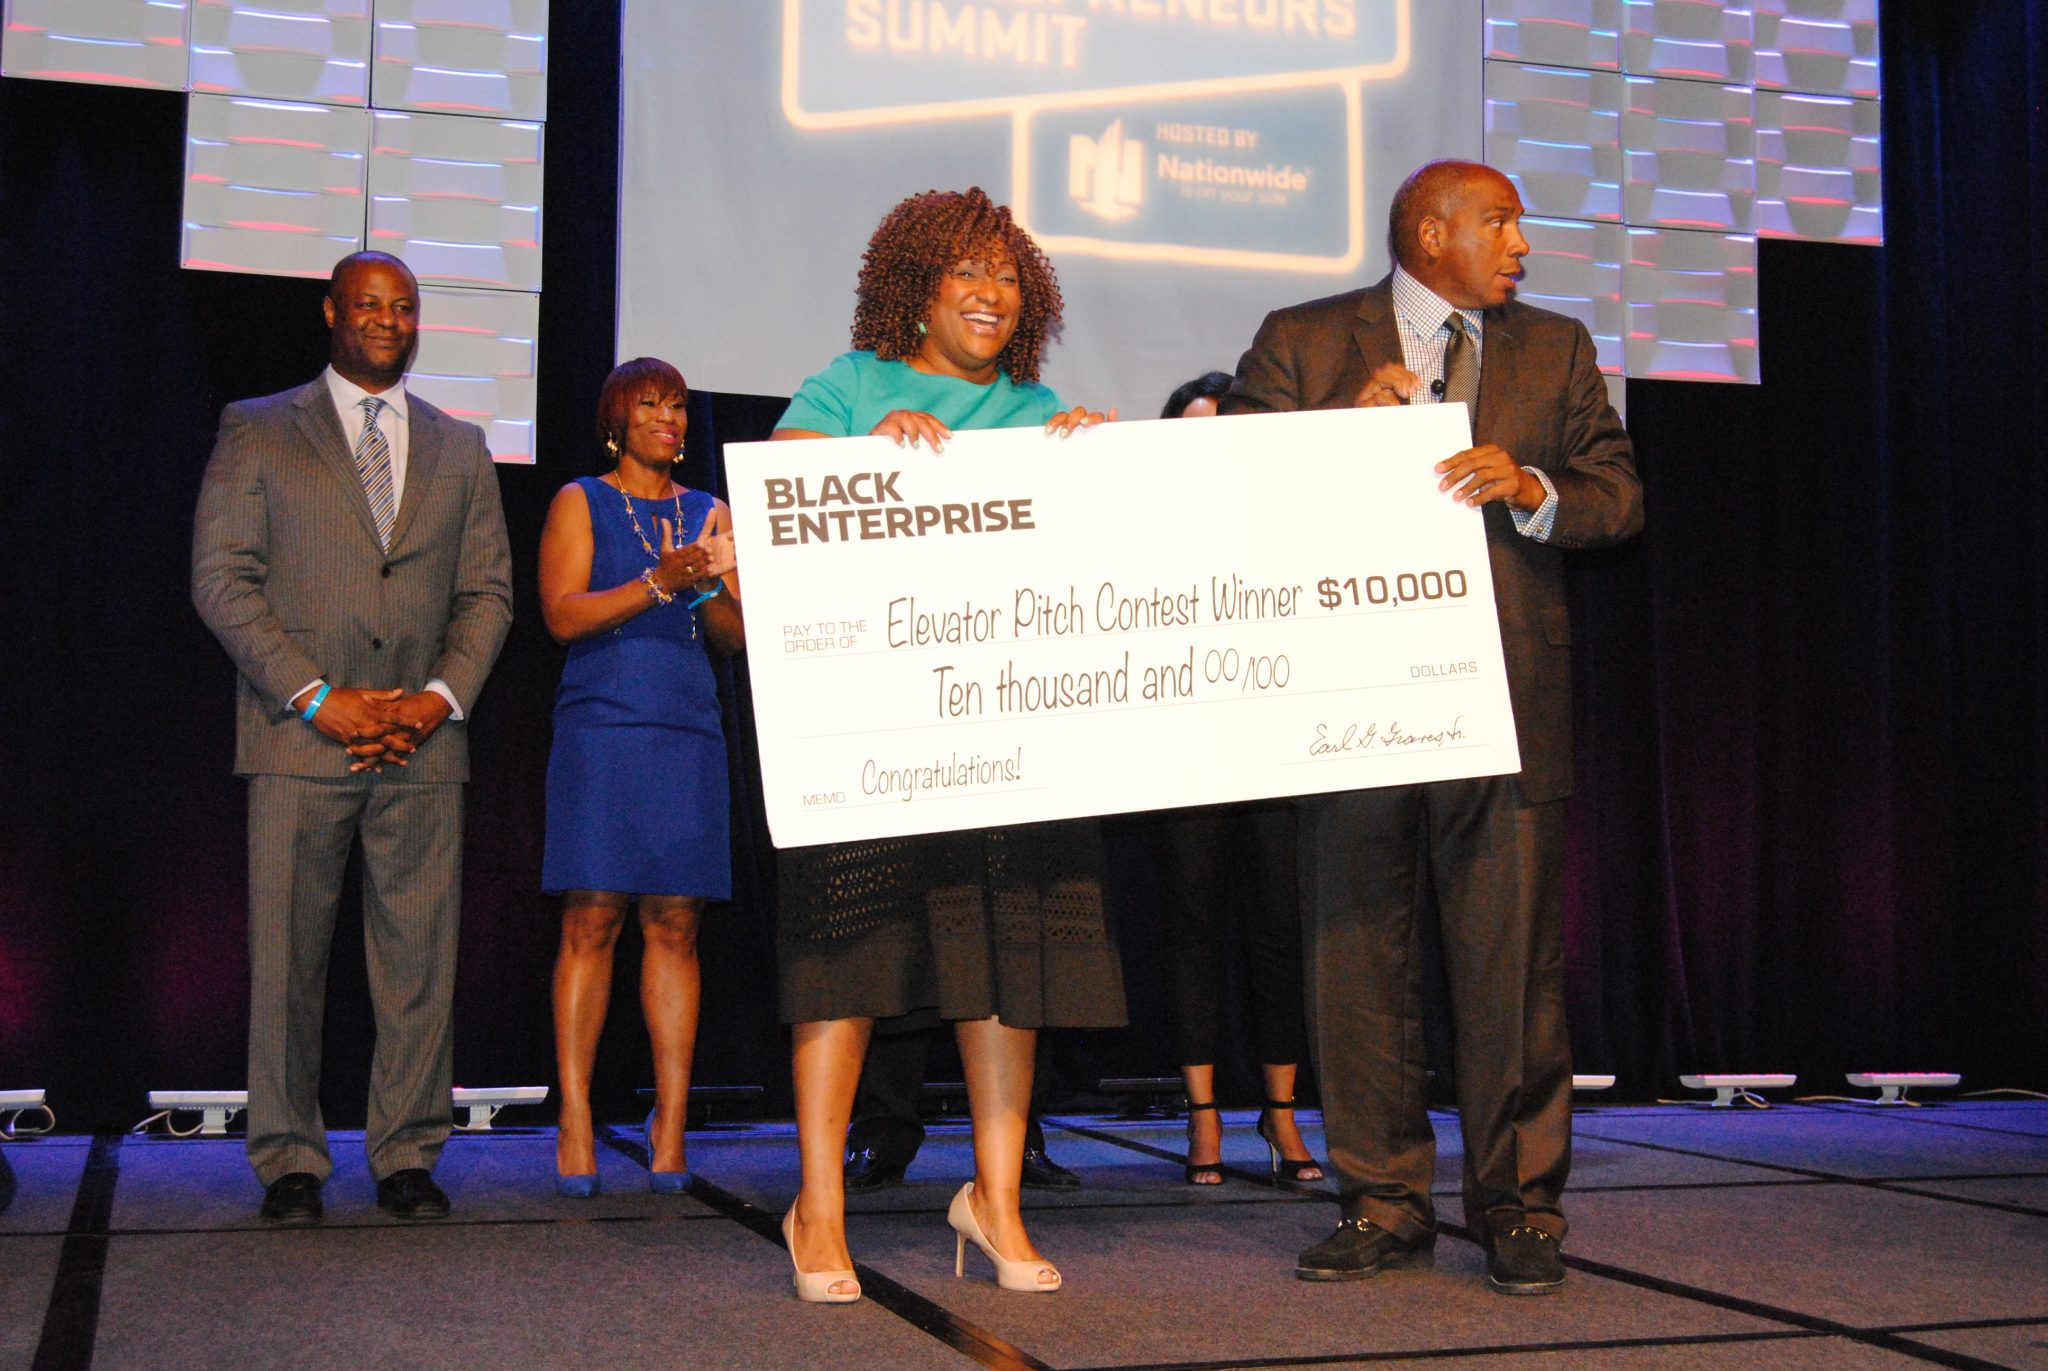 Important Things I Learned At Black Enterprise's 'Going Up' Elevator Pitch Event